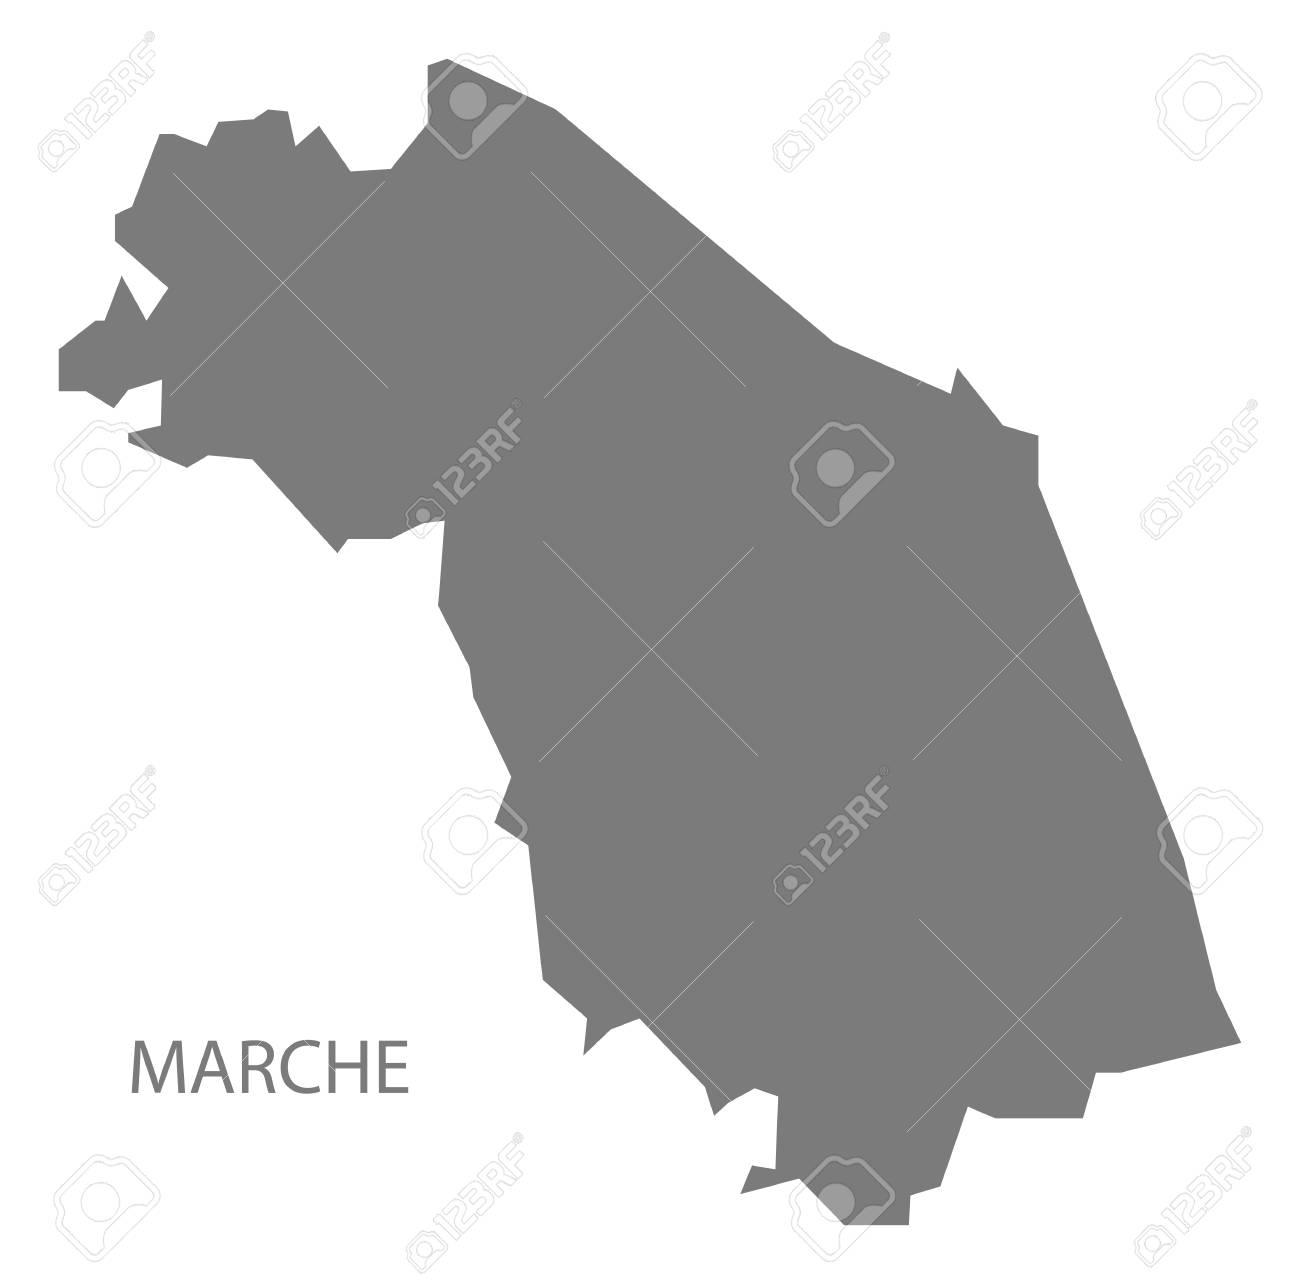 Marche Italy Map In Grey Royalty Free Cliparts Vectors And Stock